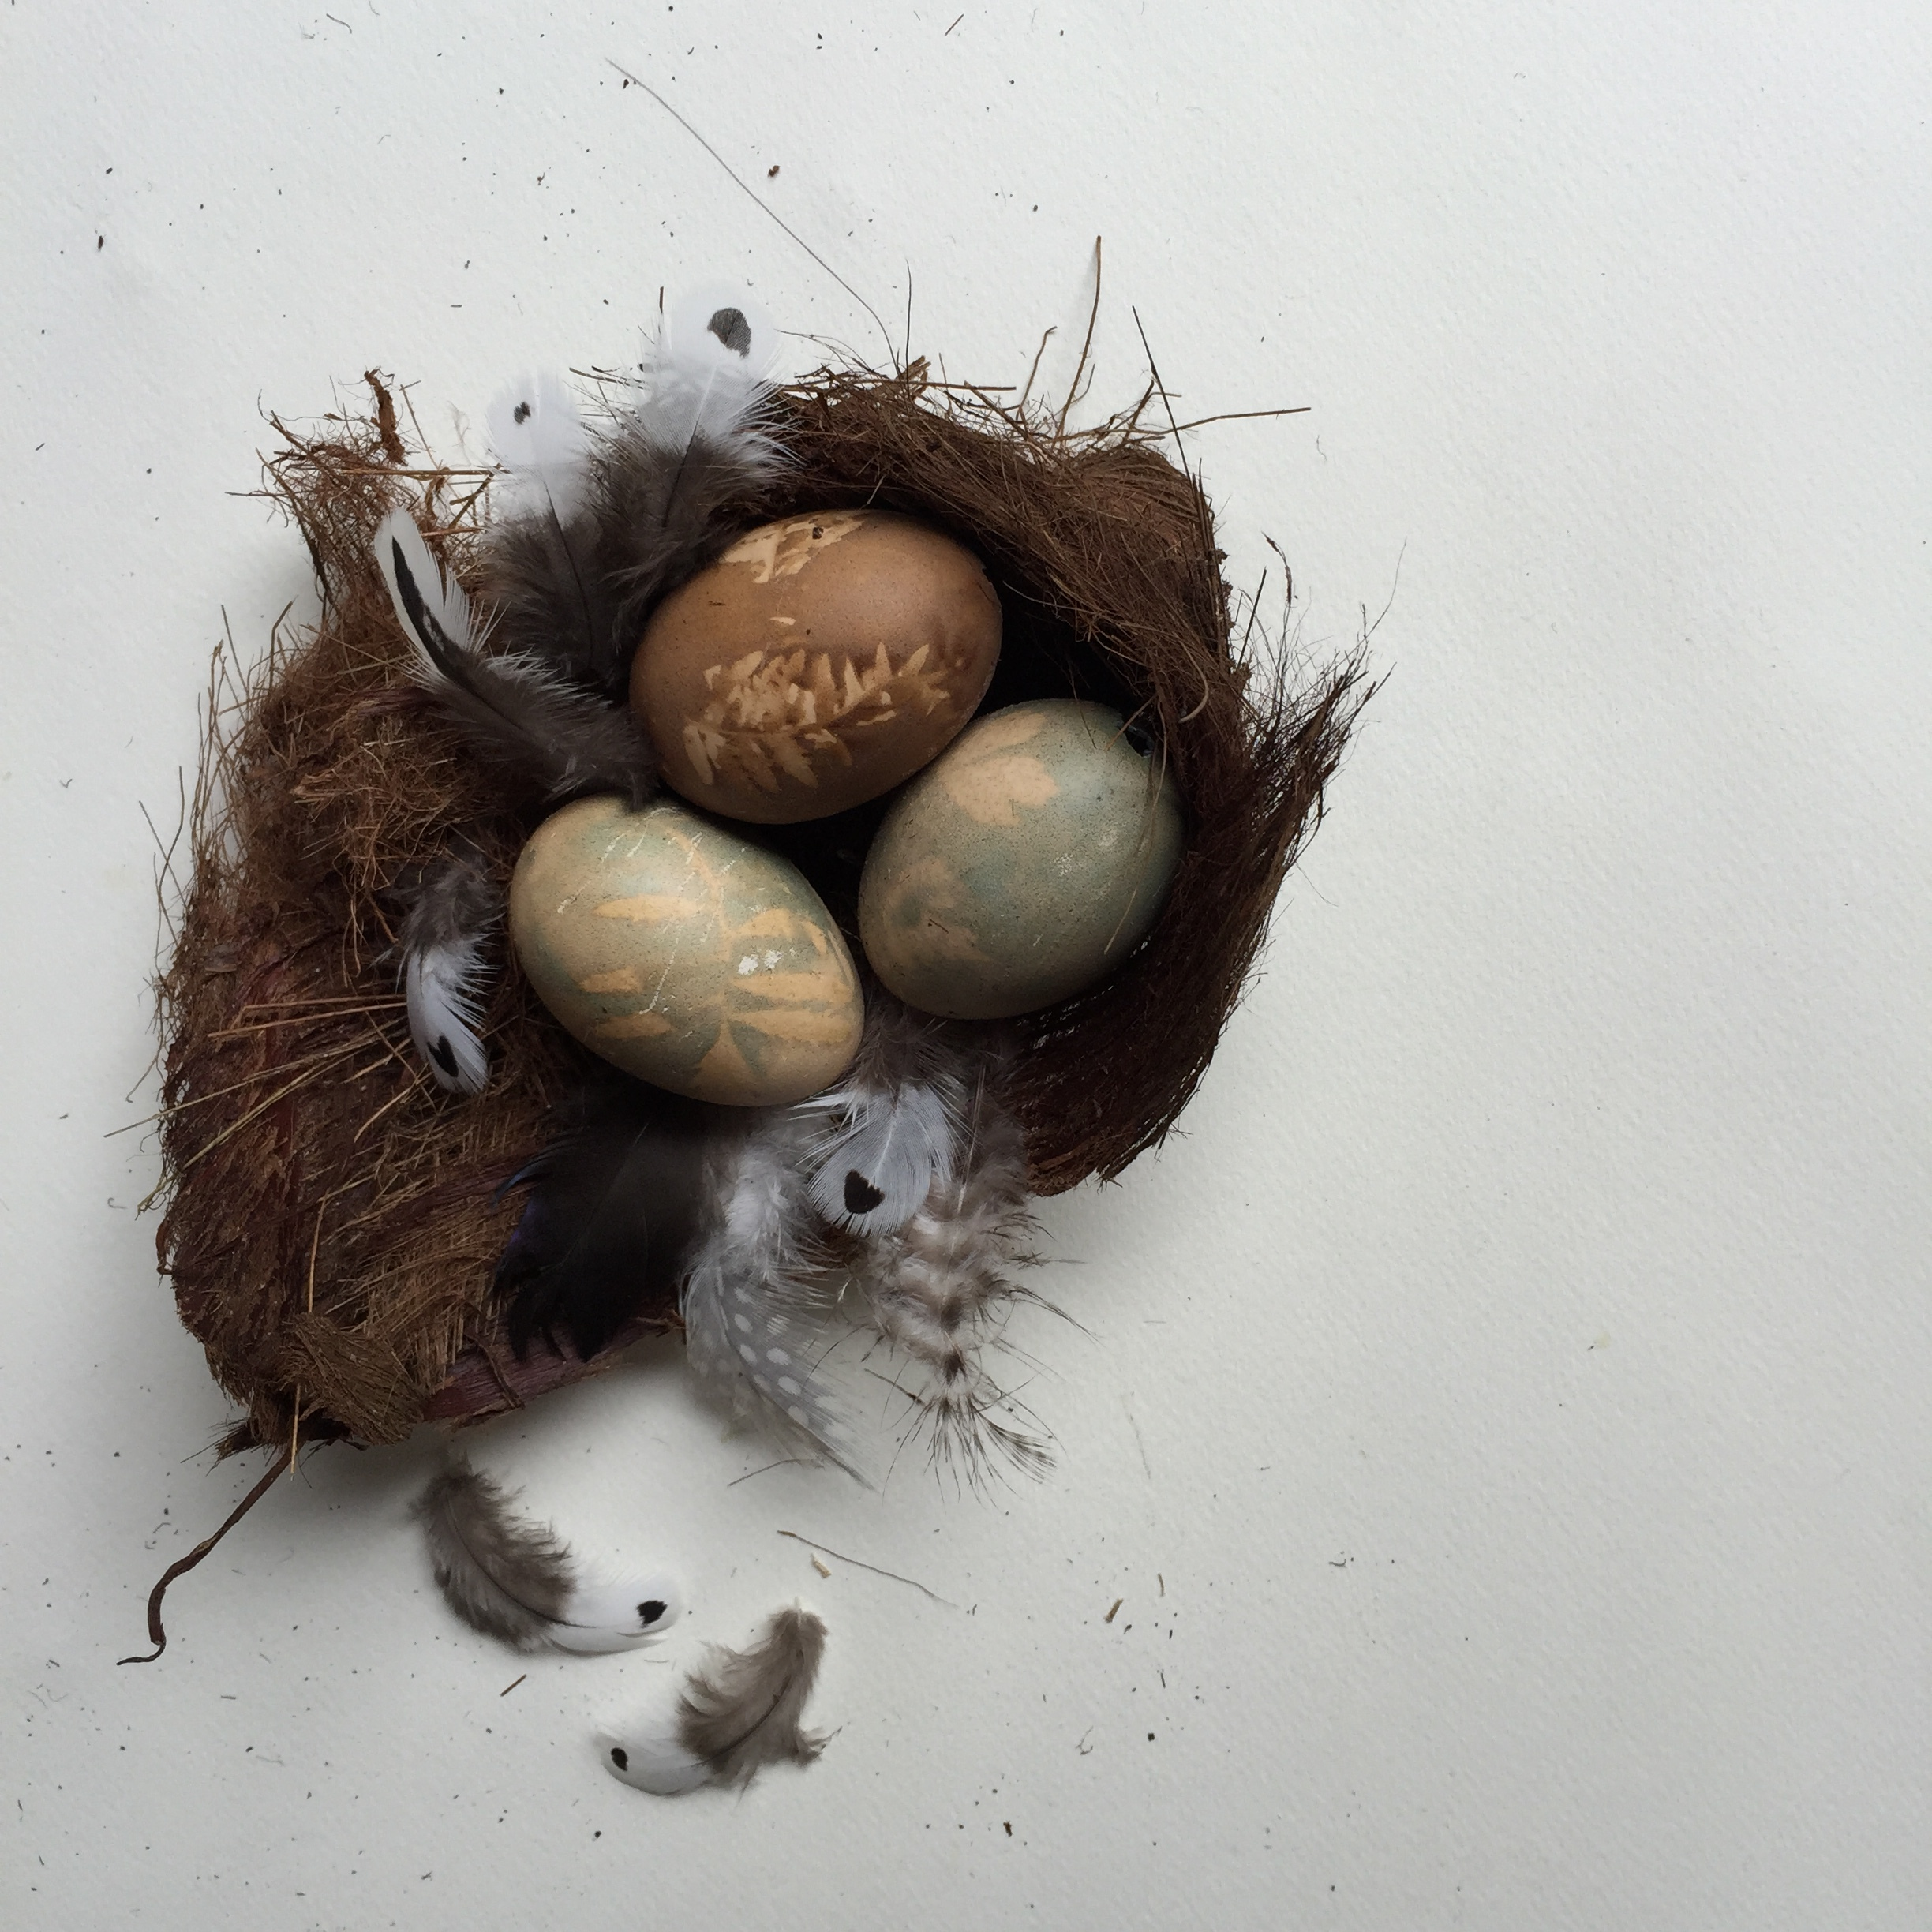 Naturally dyed easter eggs in a nest tutorial by Ellie Beck Petalplum